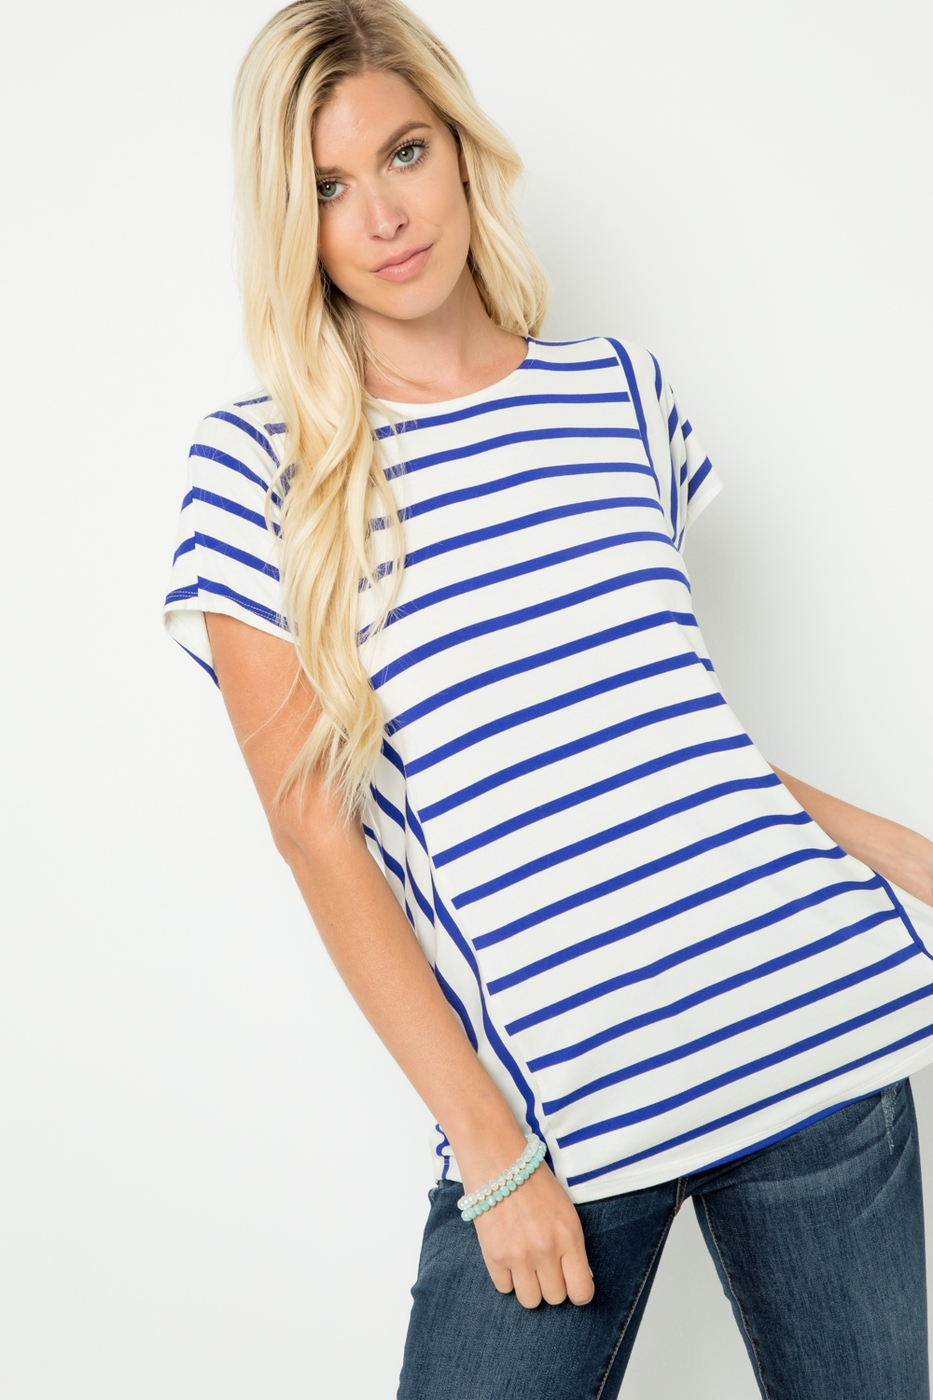 Stripped Short Sleeve Top with Butto - orangeshine.com